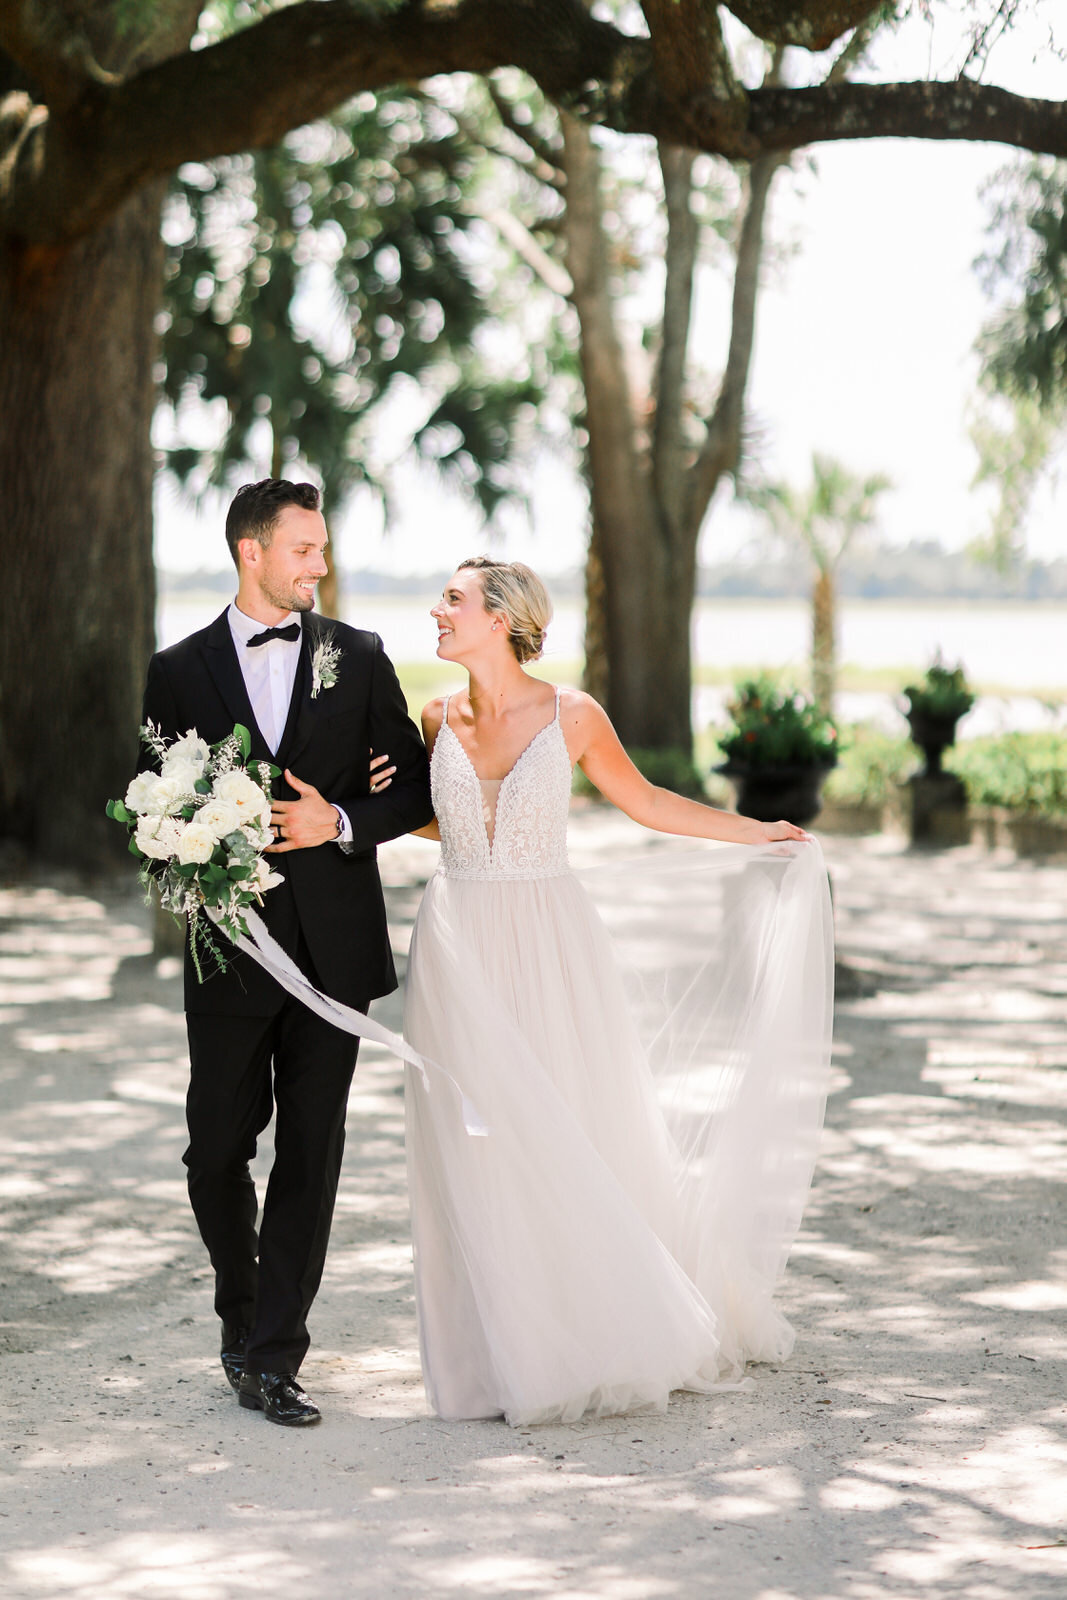 Classically southern wedding photography at Lowndes Grove wedding venue in Charleston, South Carolina.